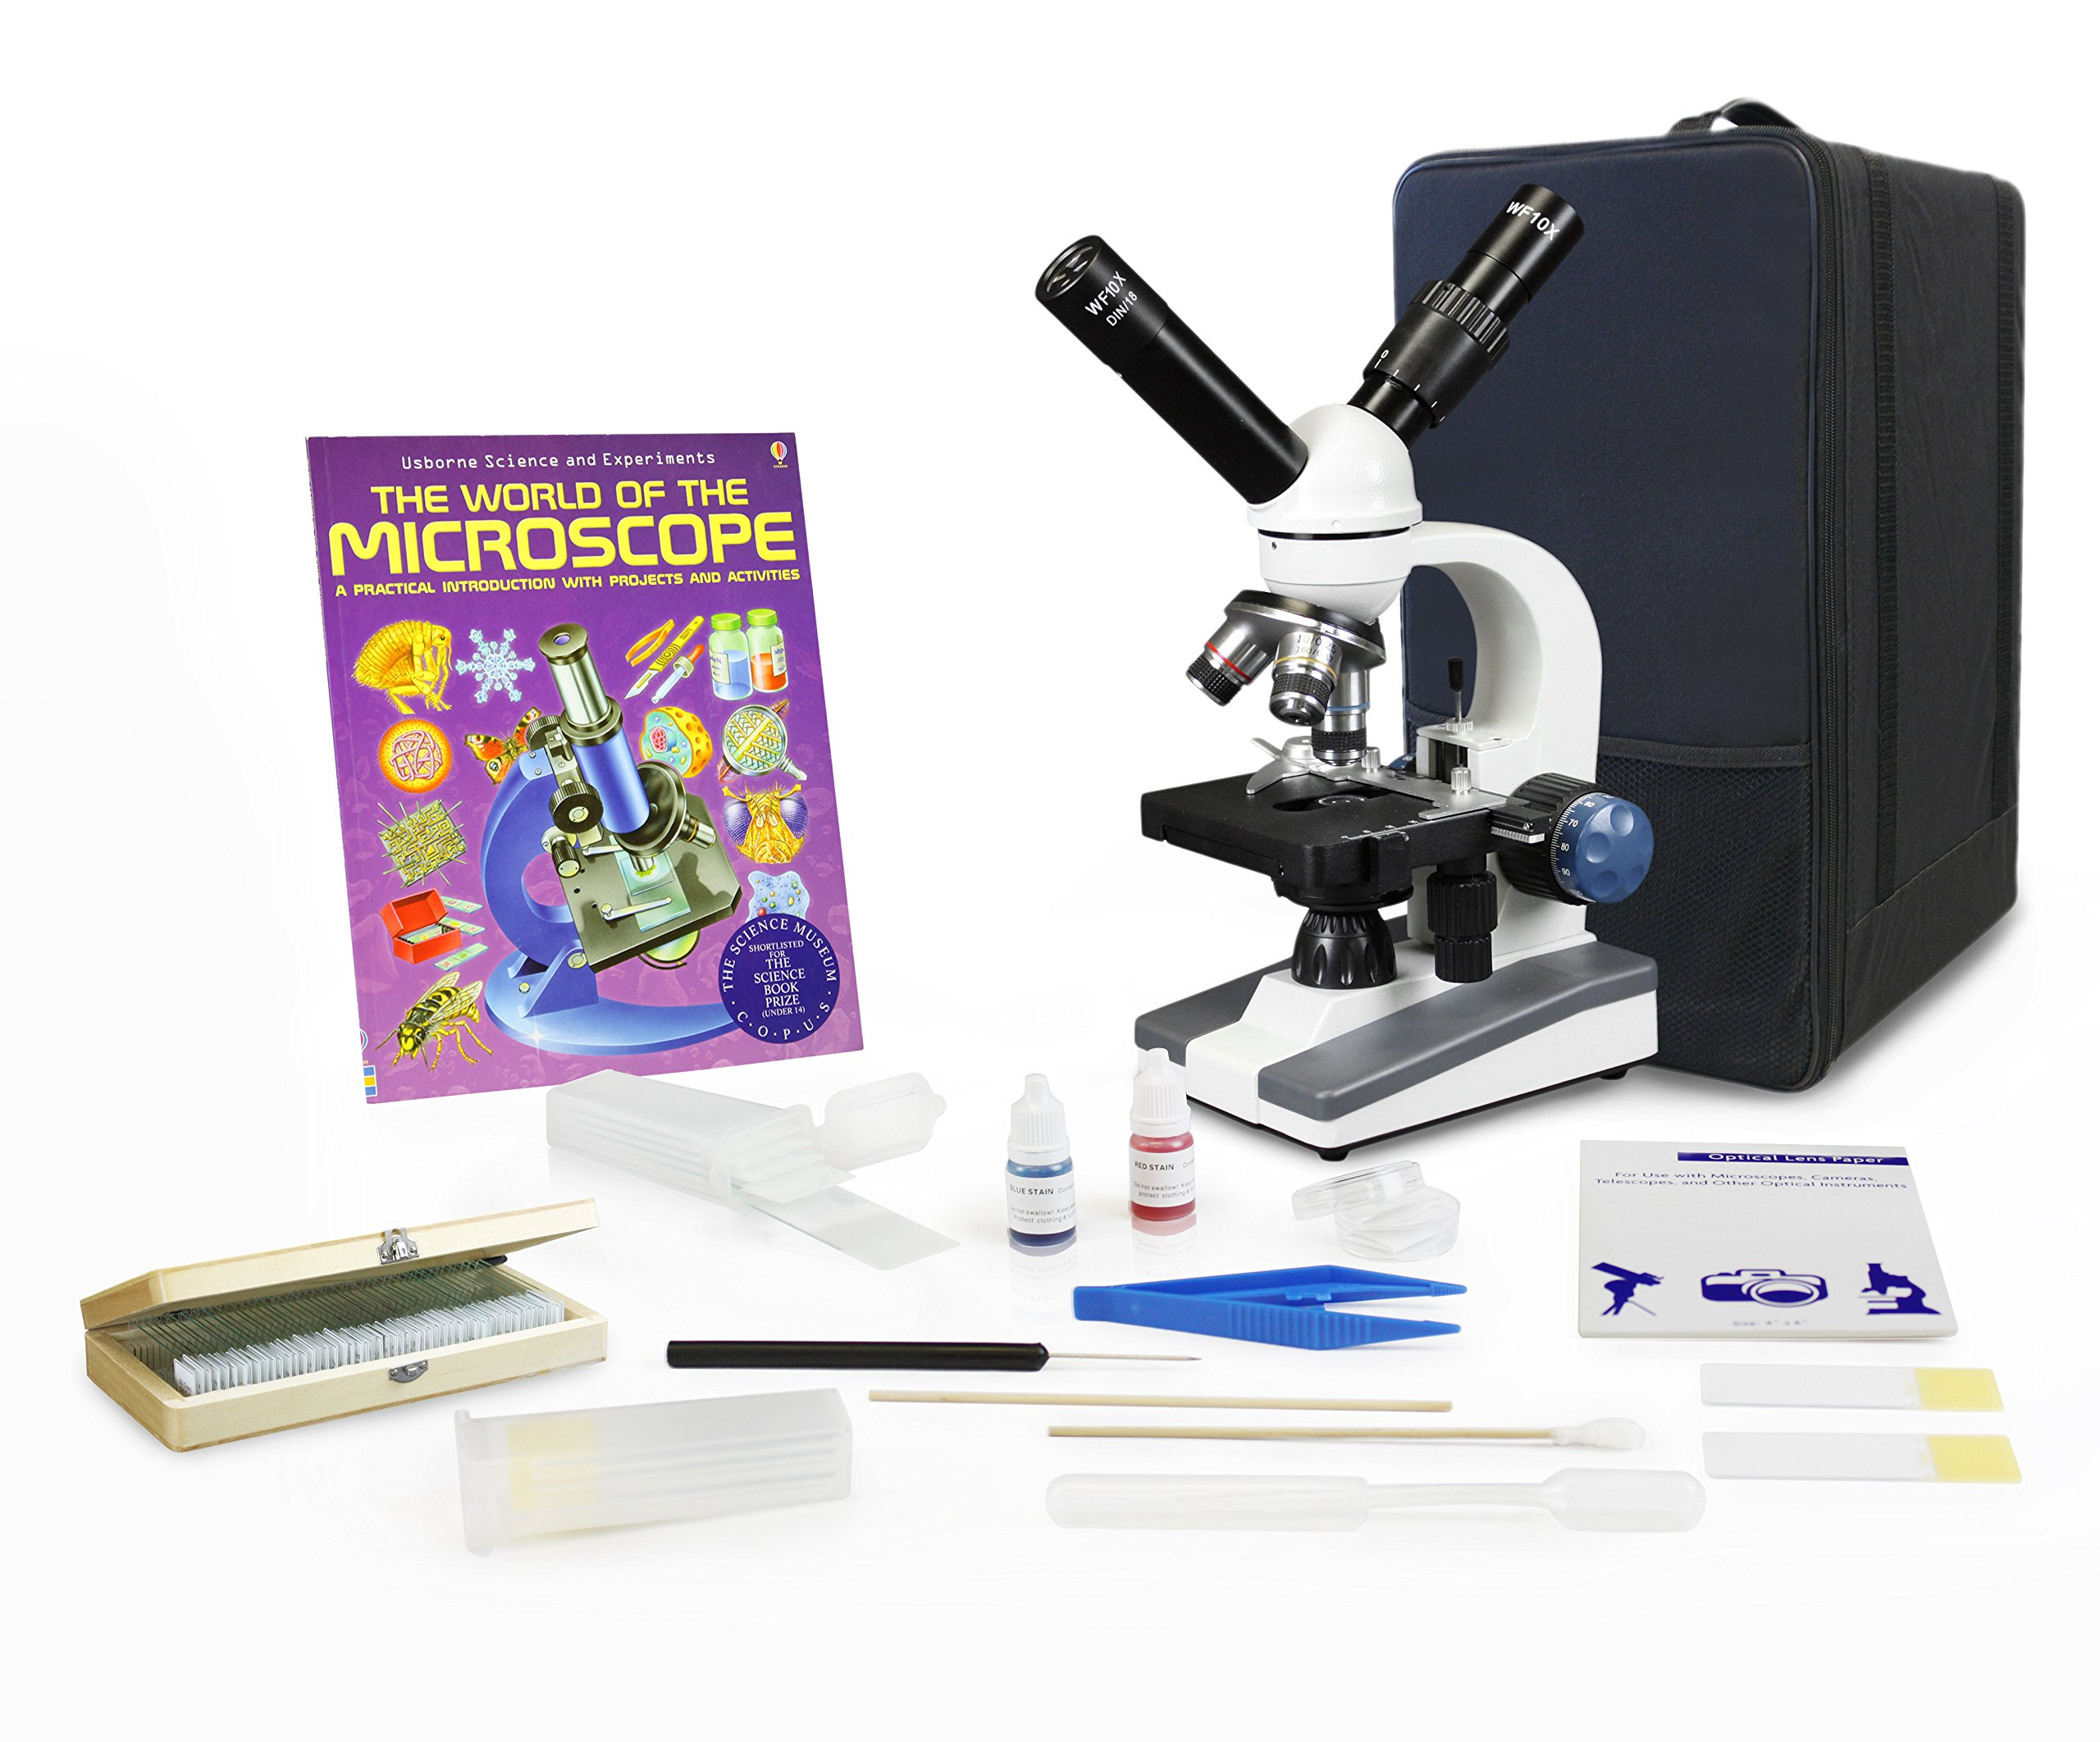 Parco Scientific Dual View Elementary Level Microscope, Mechanical Stage, Rechargeable, Microscope Book, Microscope Discovery Kit, 50 Prepared Slides Set, Carrying Case, Package (20 Value)